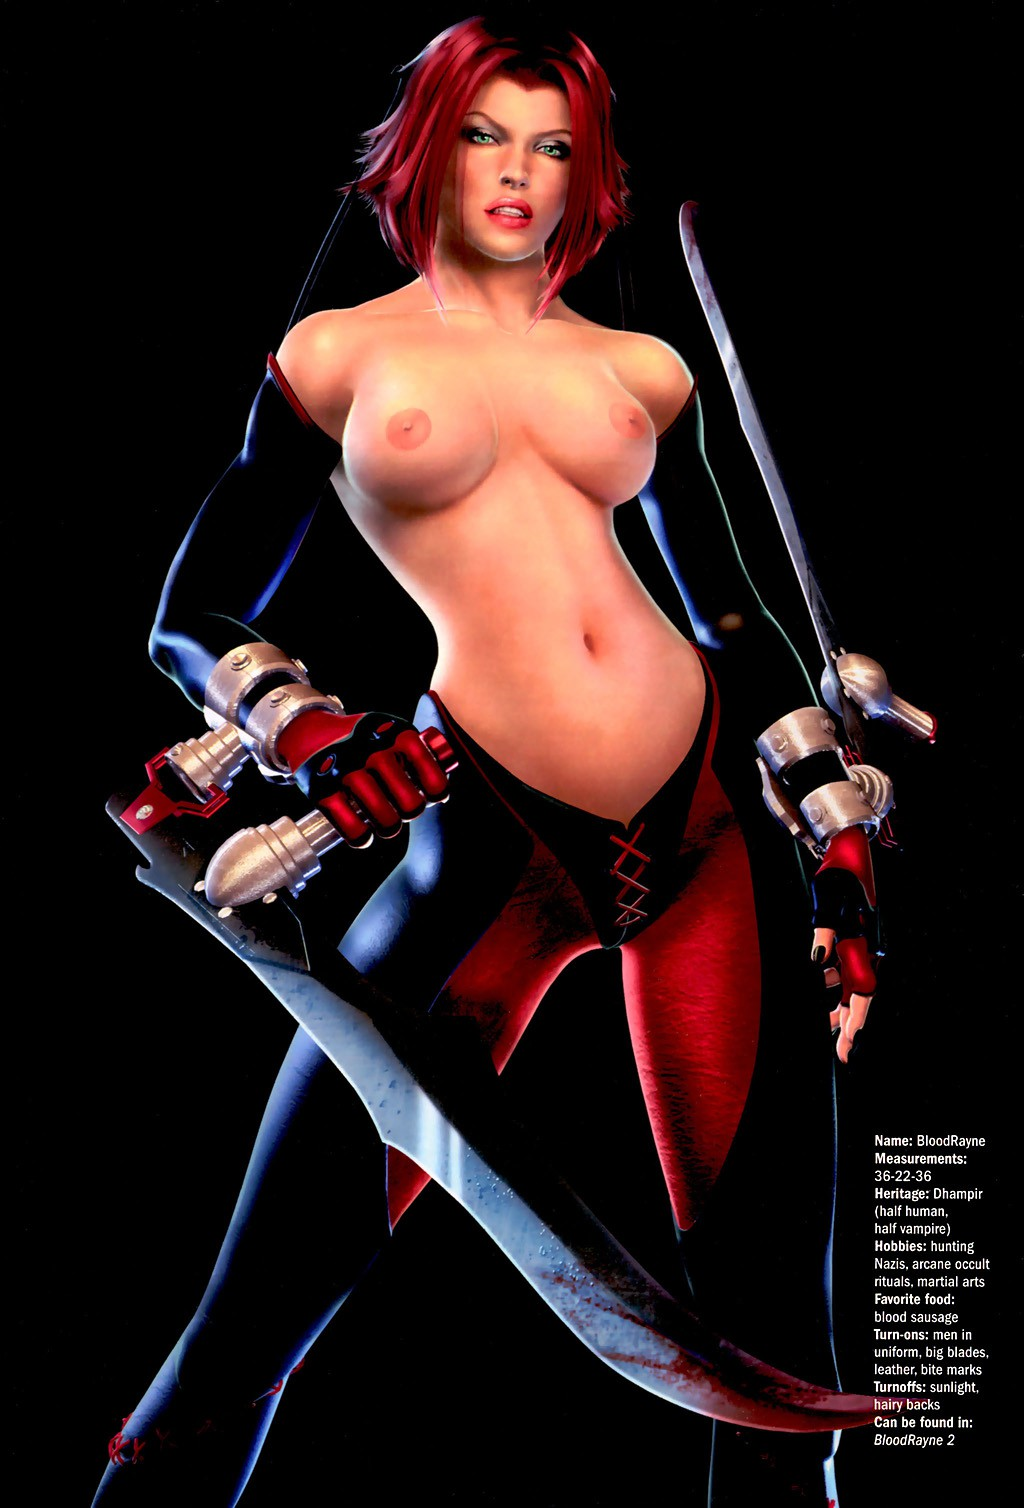 X art bloody porn wallpaper hentai fantasy girl